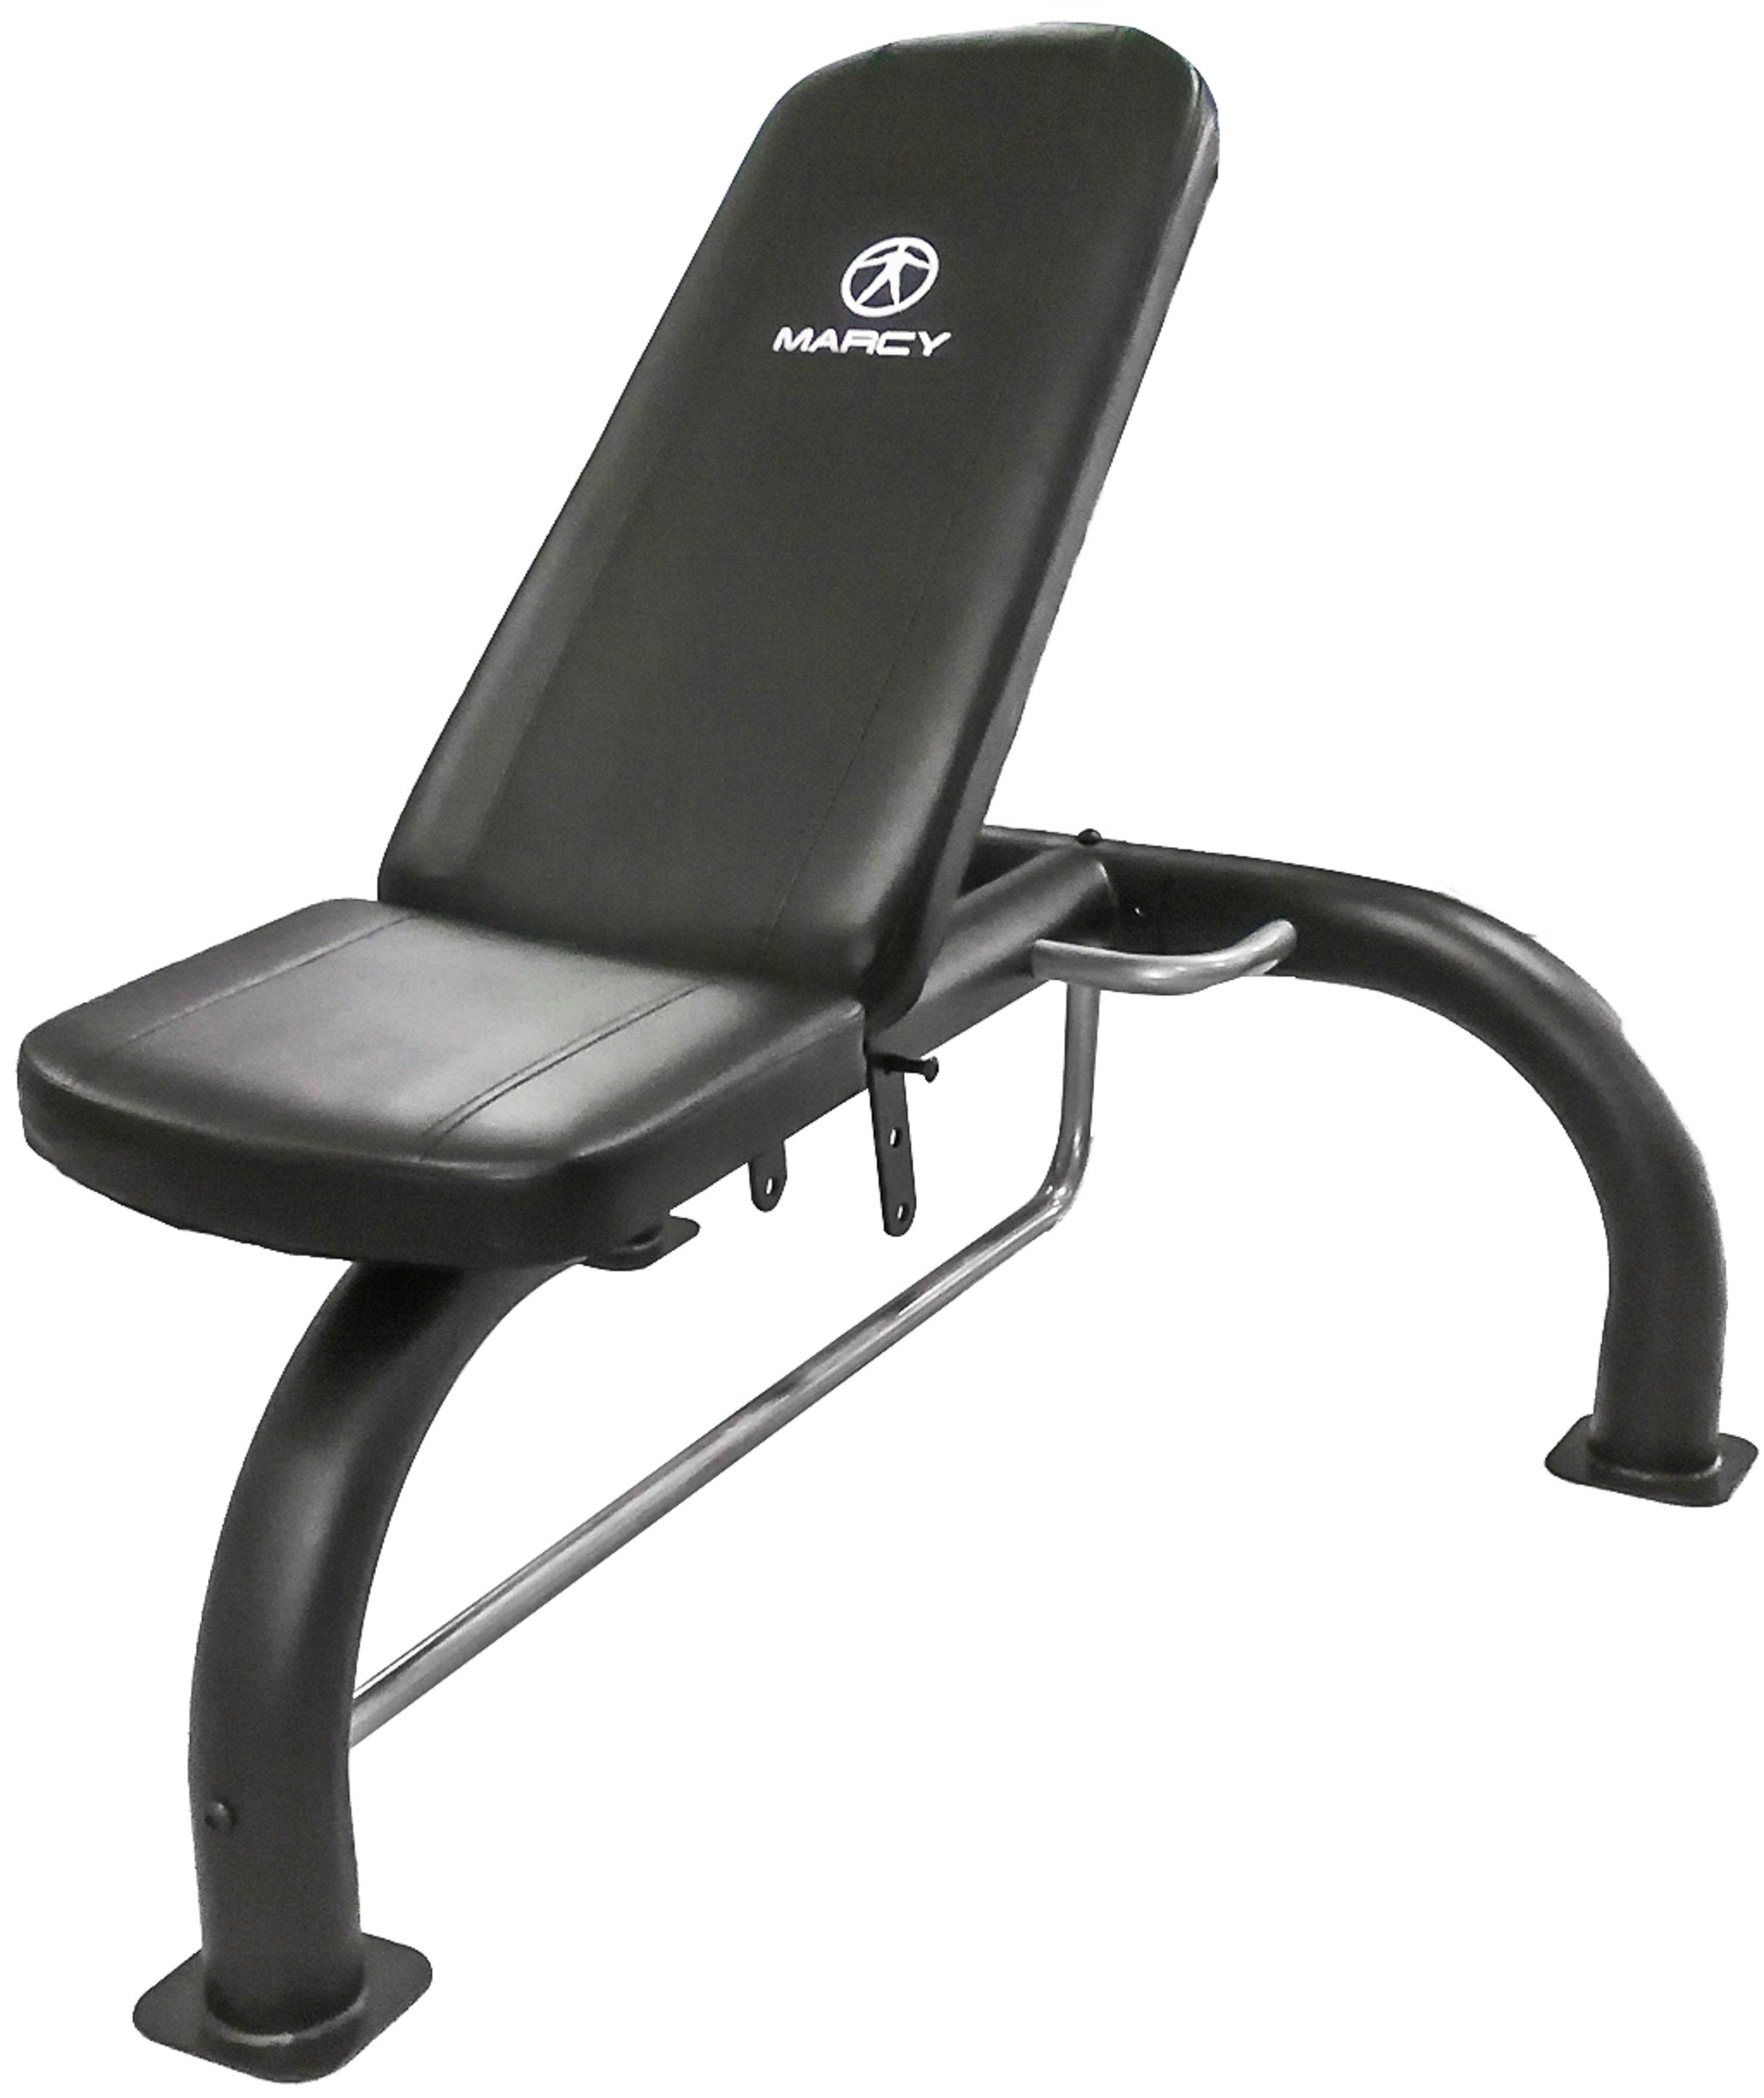 Marcy SB-10900 Utility Bench by Marcy